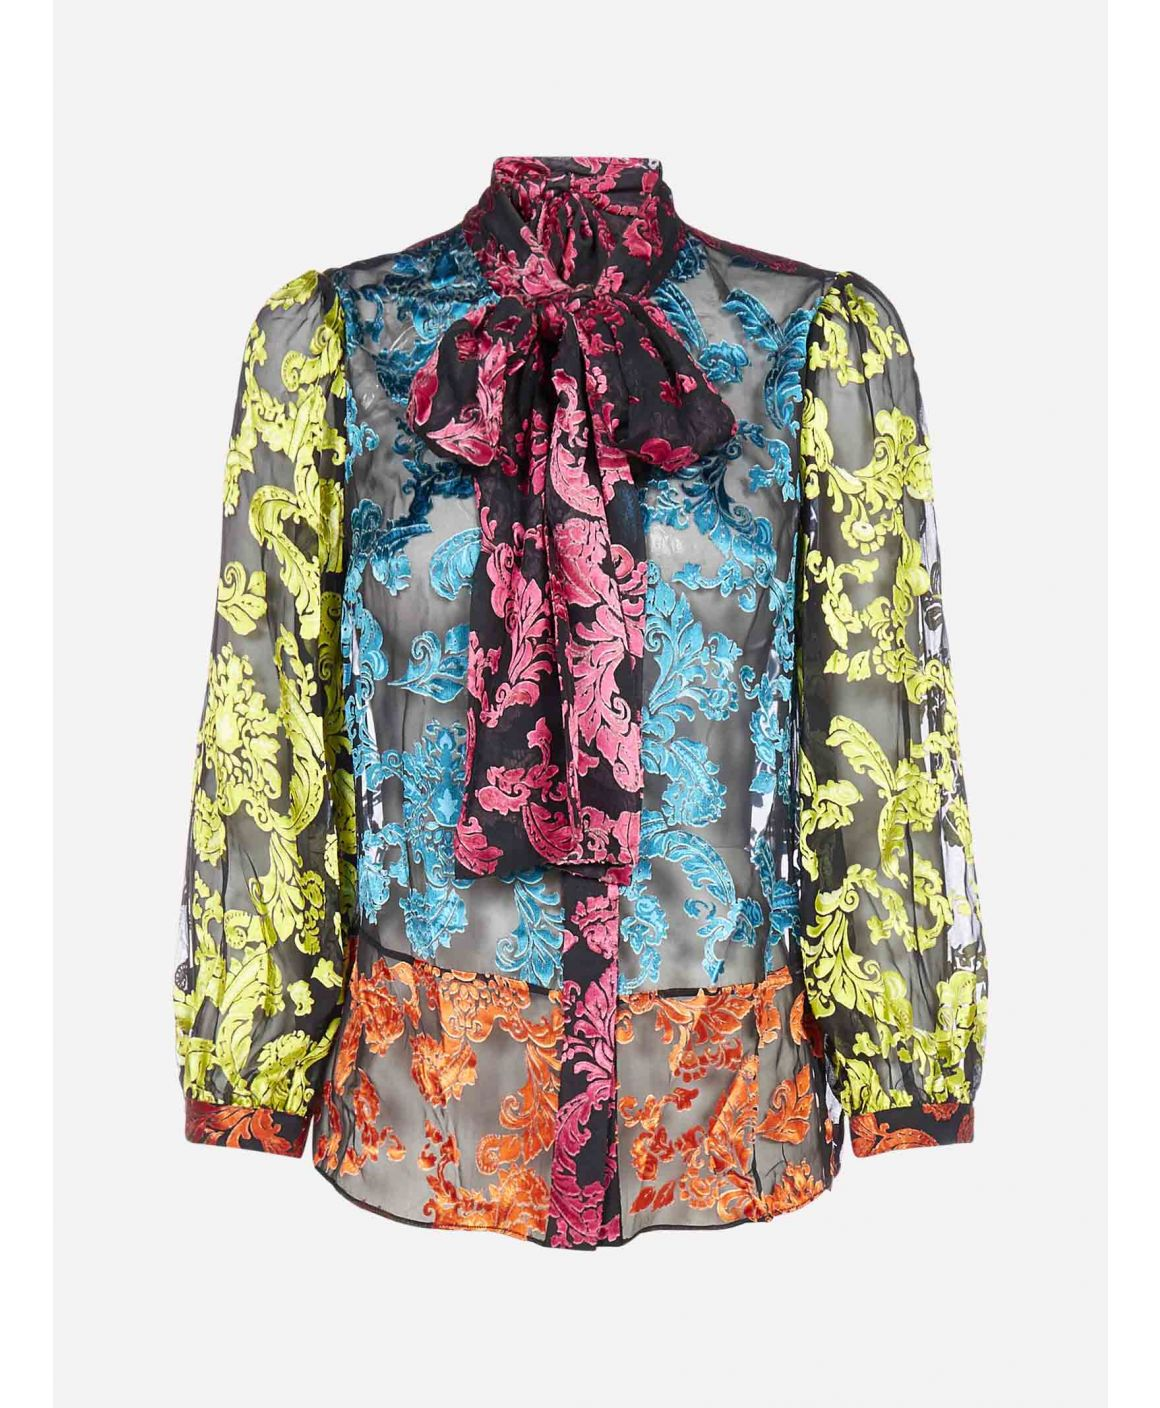 Jeannie jacquard silk shirt